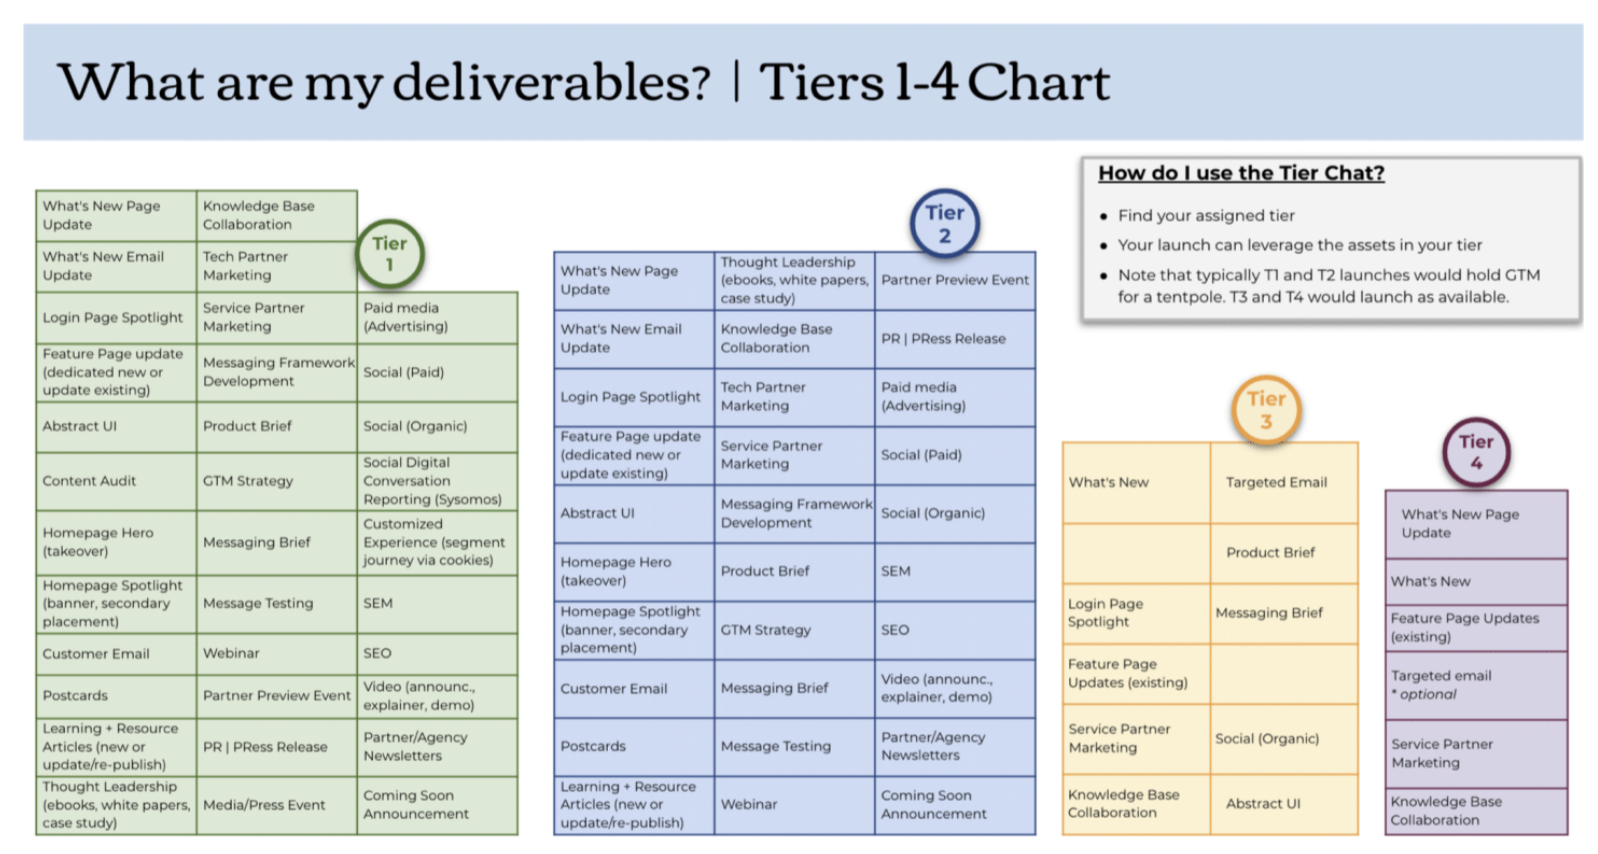 Chart prioritizing deliverables